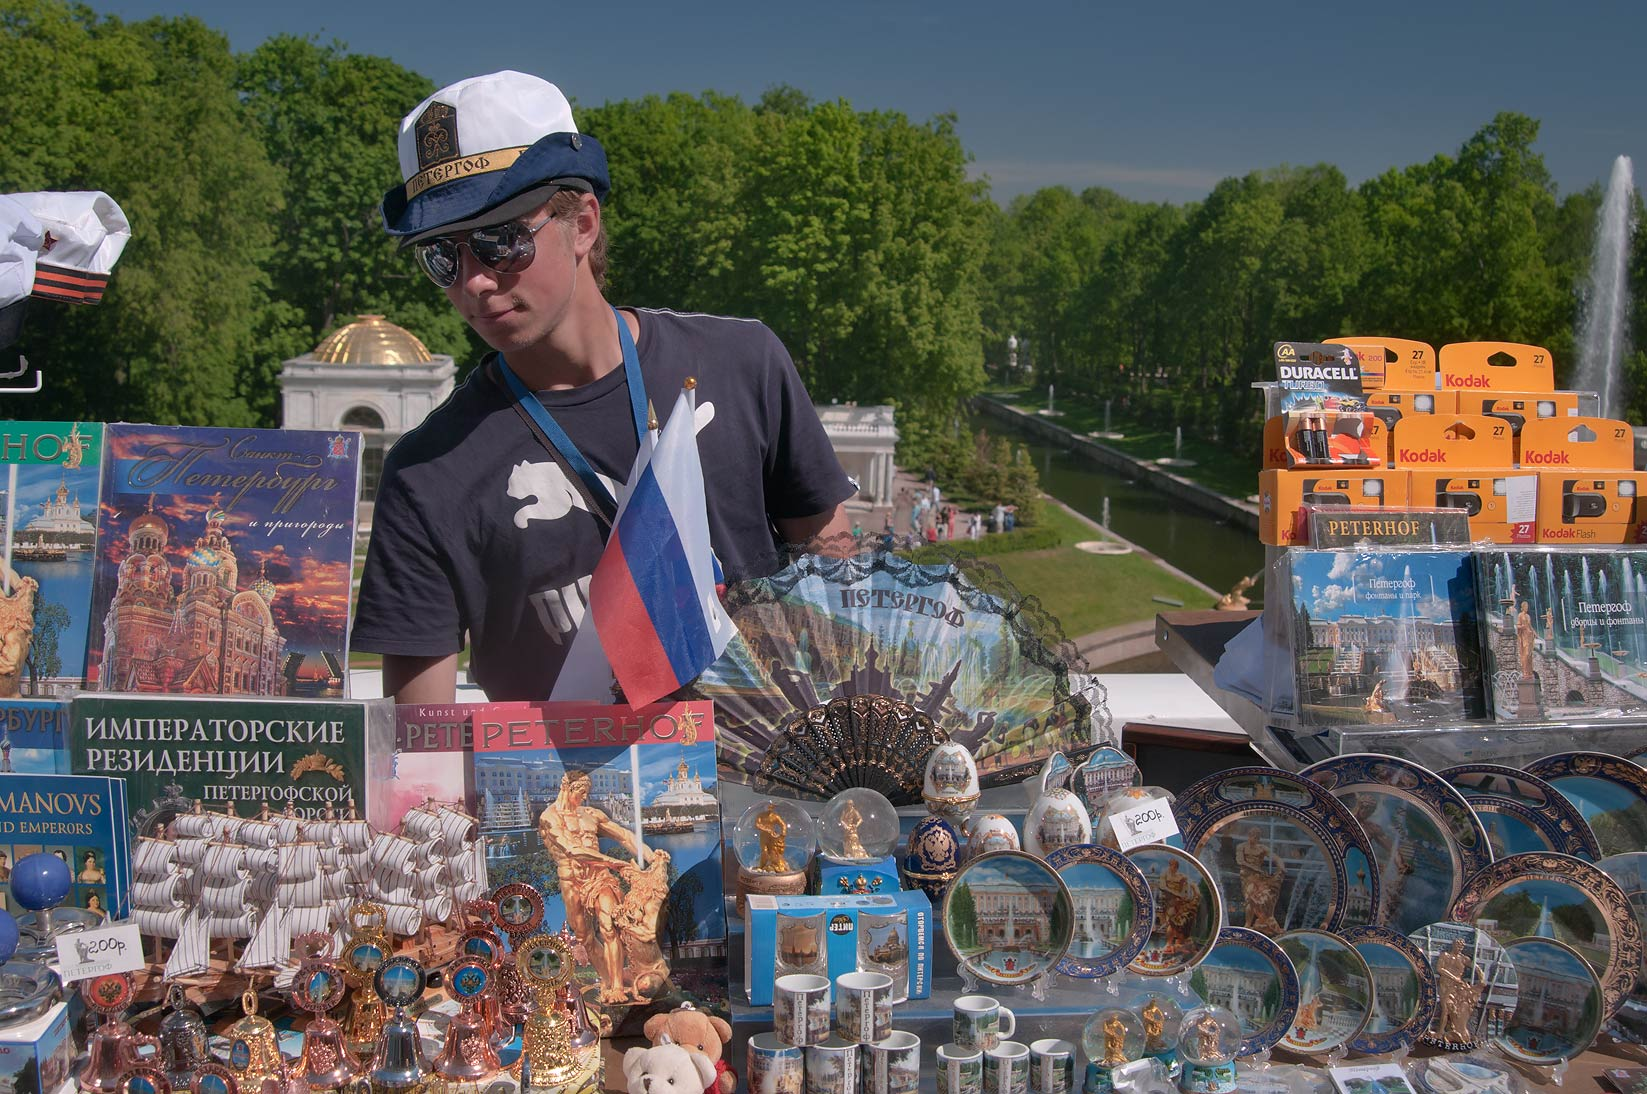 Souvenir stand at Grand Cascade of fountains in Peterhof, west from St.Petersburg. Russia